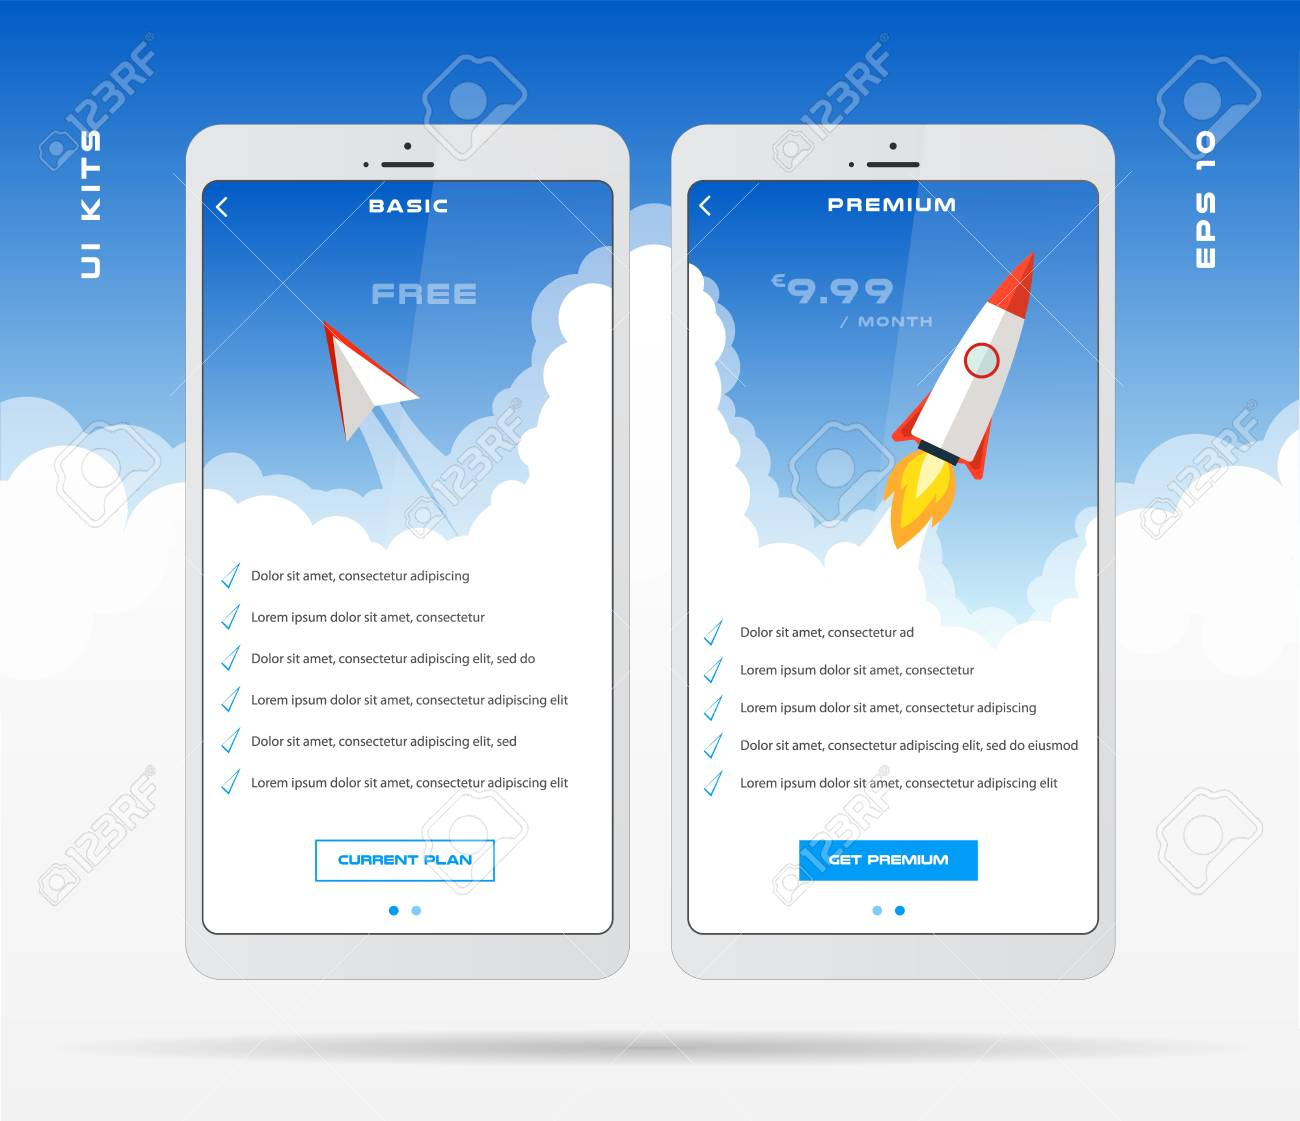 Mobile App Design Template For Price List Set, Tariff Plan, Pricing Table  For Business